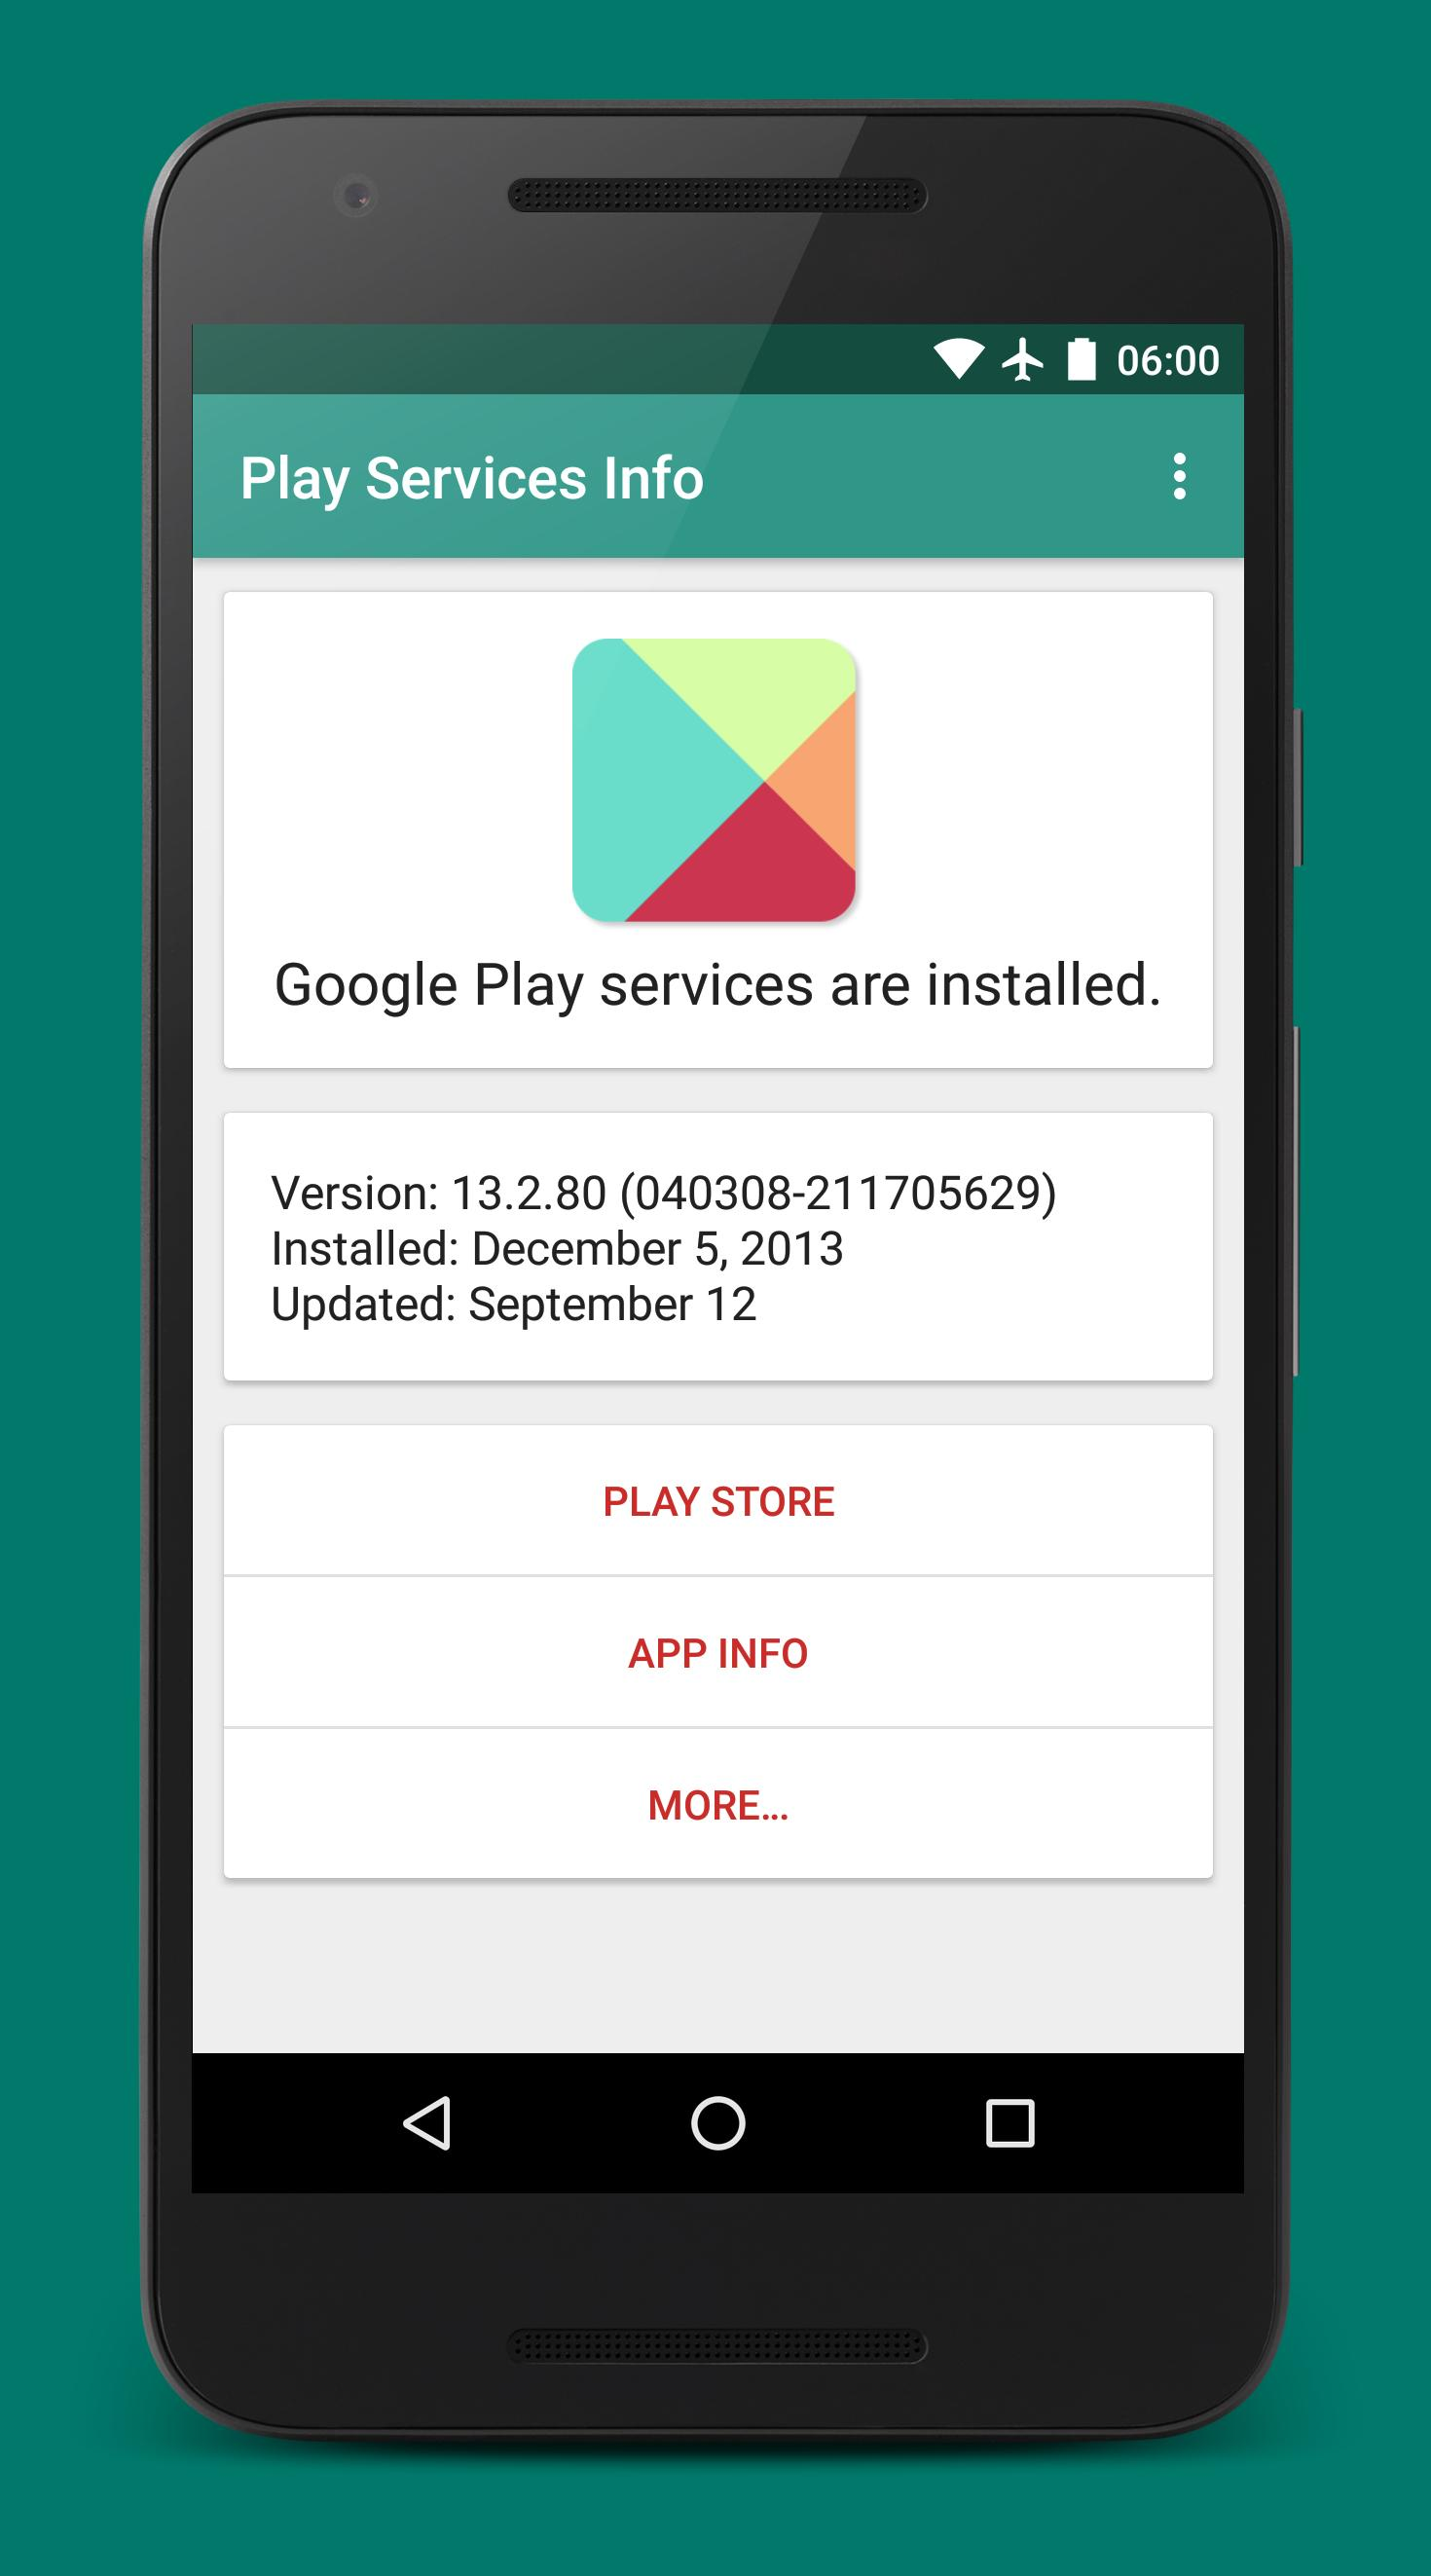 play store latest apk download for android 4.2.2